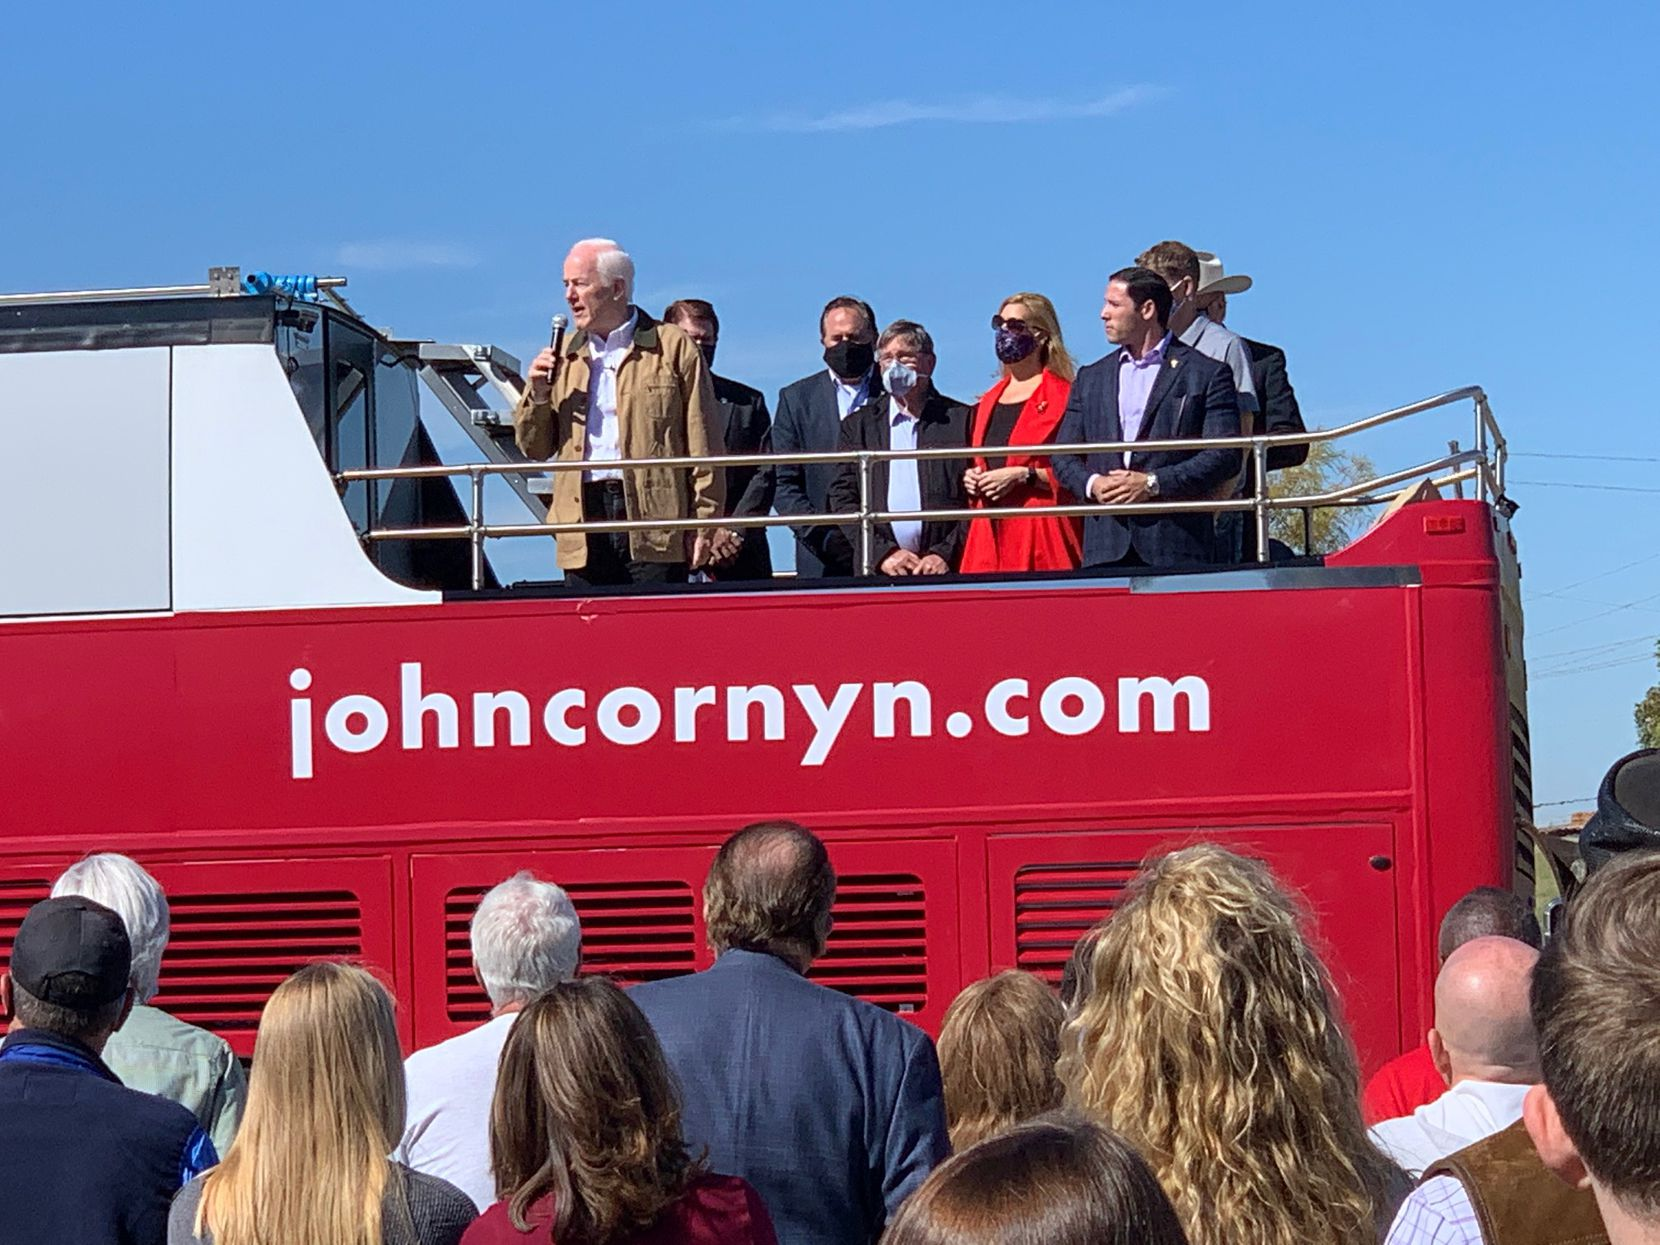 Sen. John Cornyn campaigns at Panther Island Pavilion in Fort Worth. (Gromer Jeffers Jr./The Dallas Morning News.)